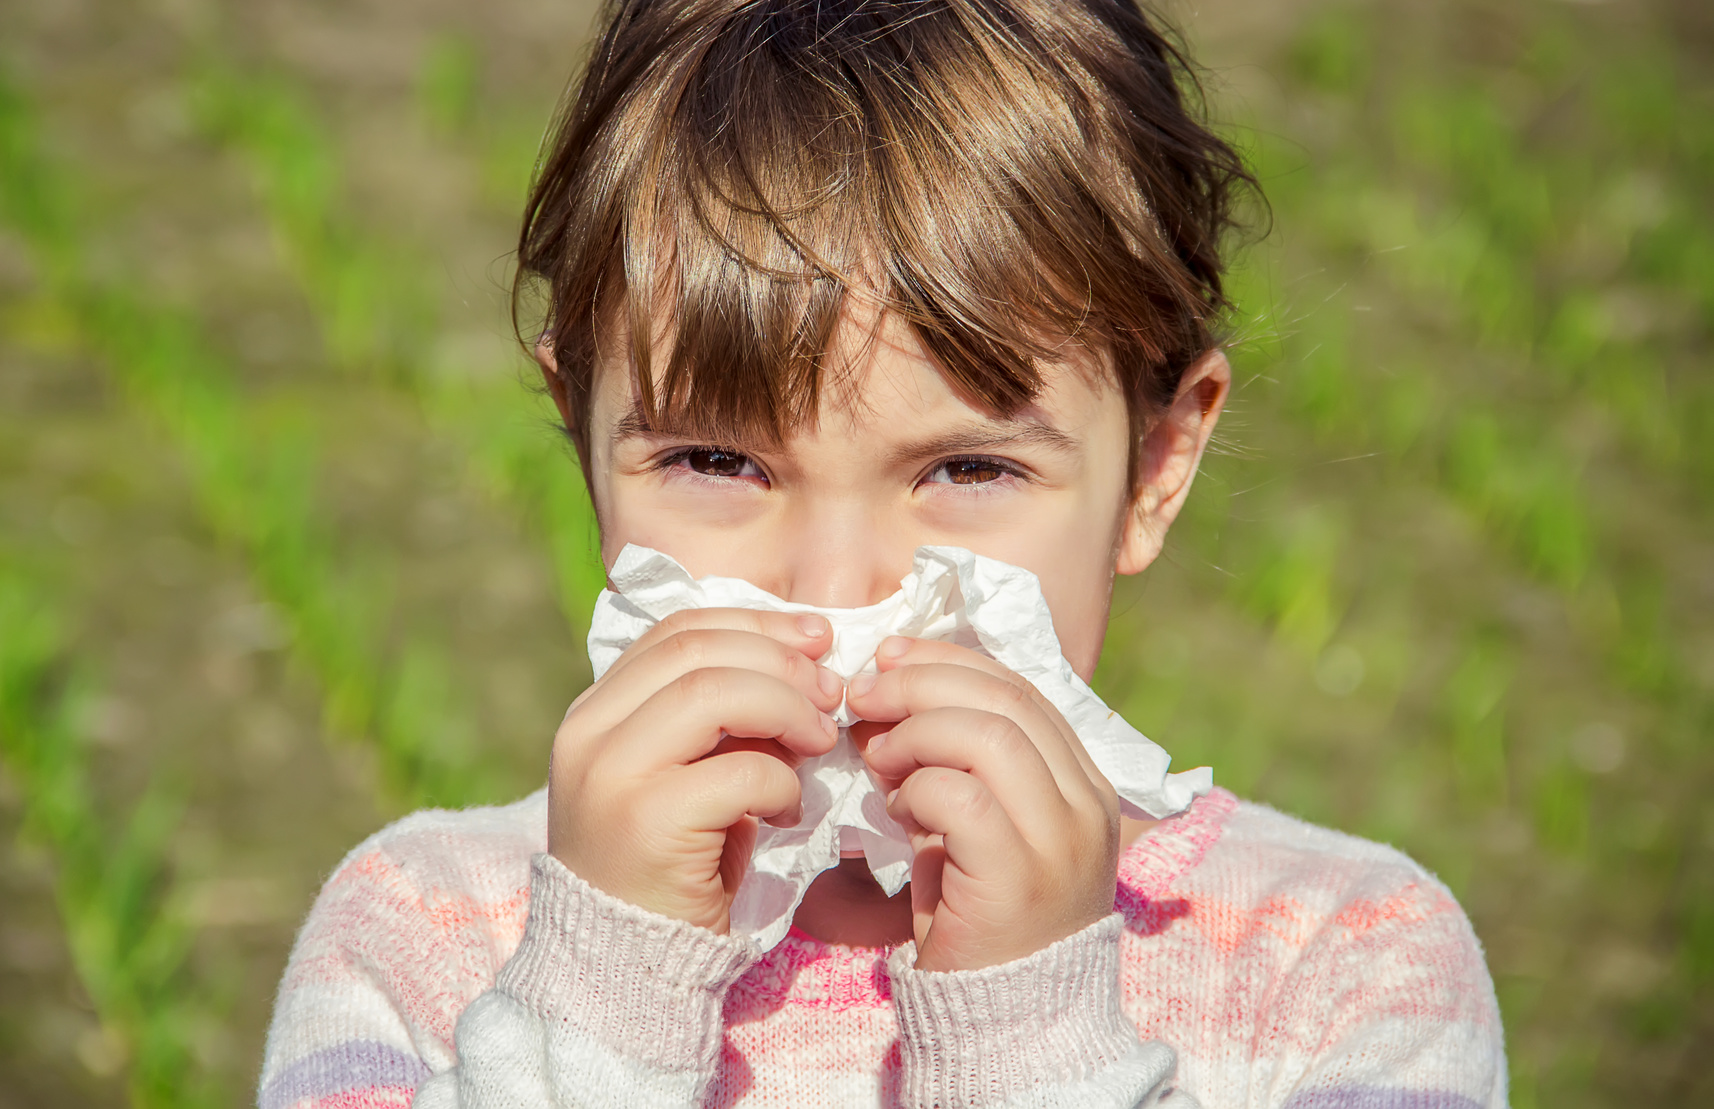 Why Does the Sun Make Some People Sneeze? - FOCUS - A health